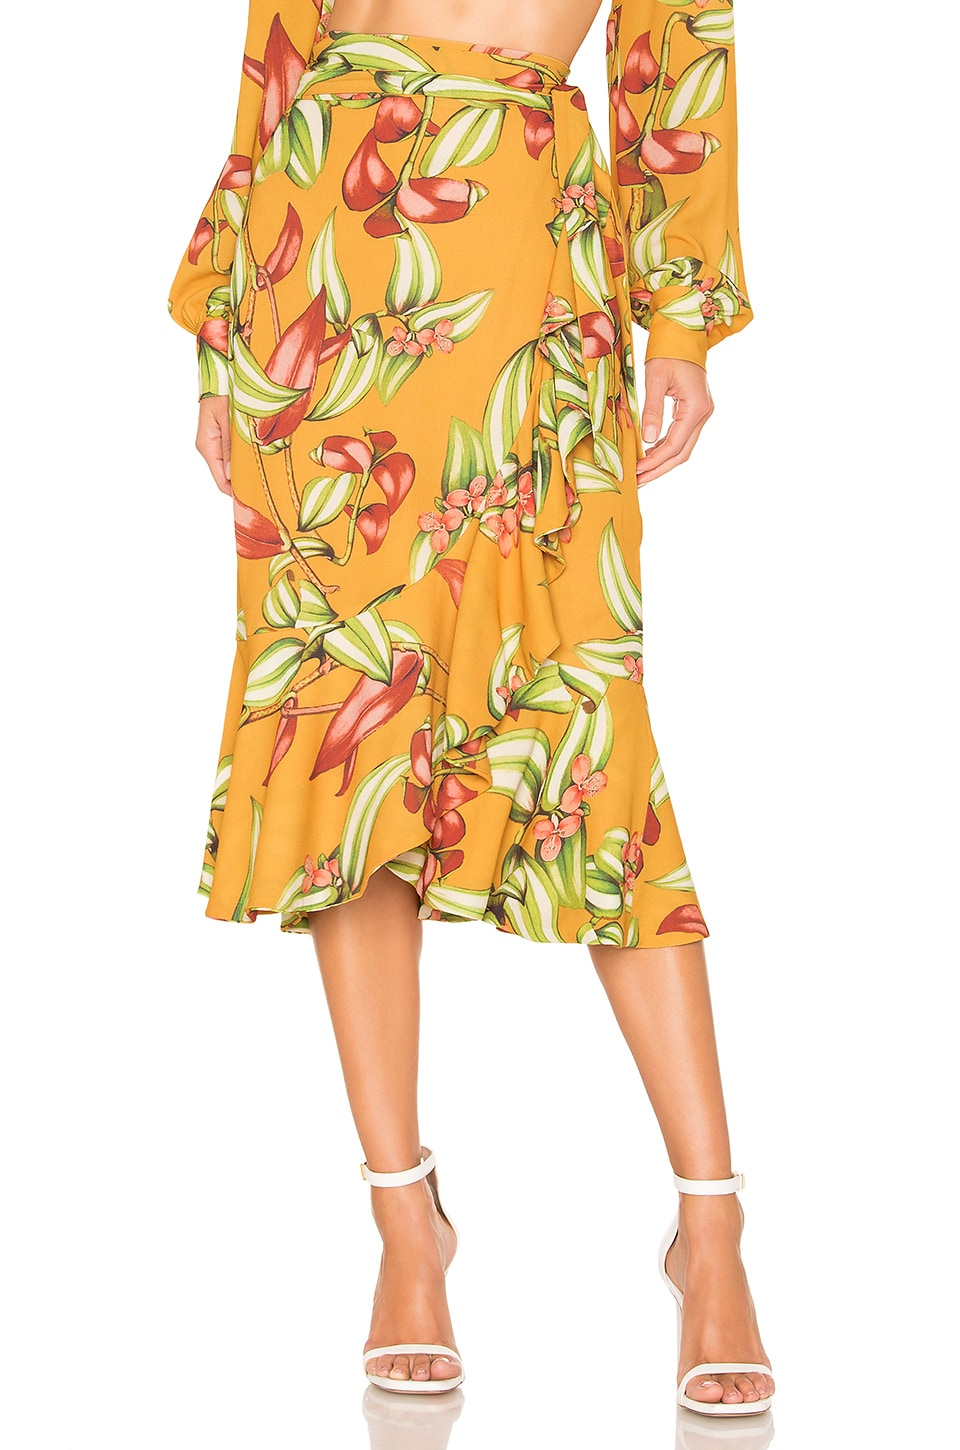 PatBo Zebrina Print Wrap Skirt in Yellow